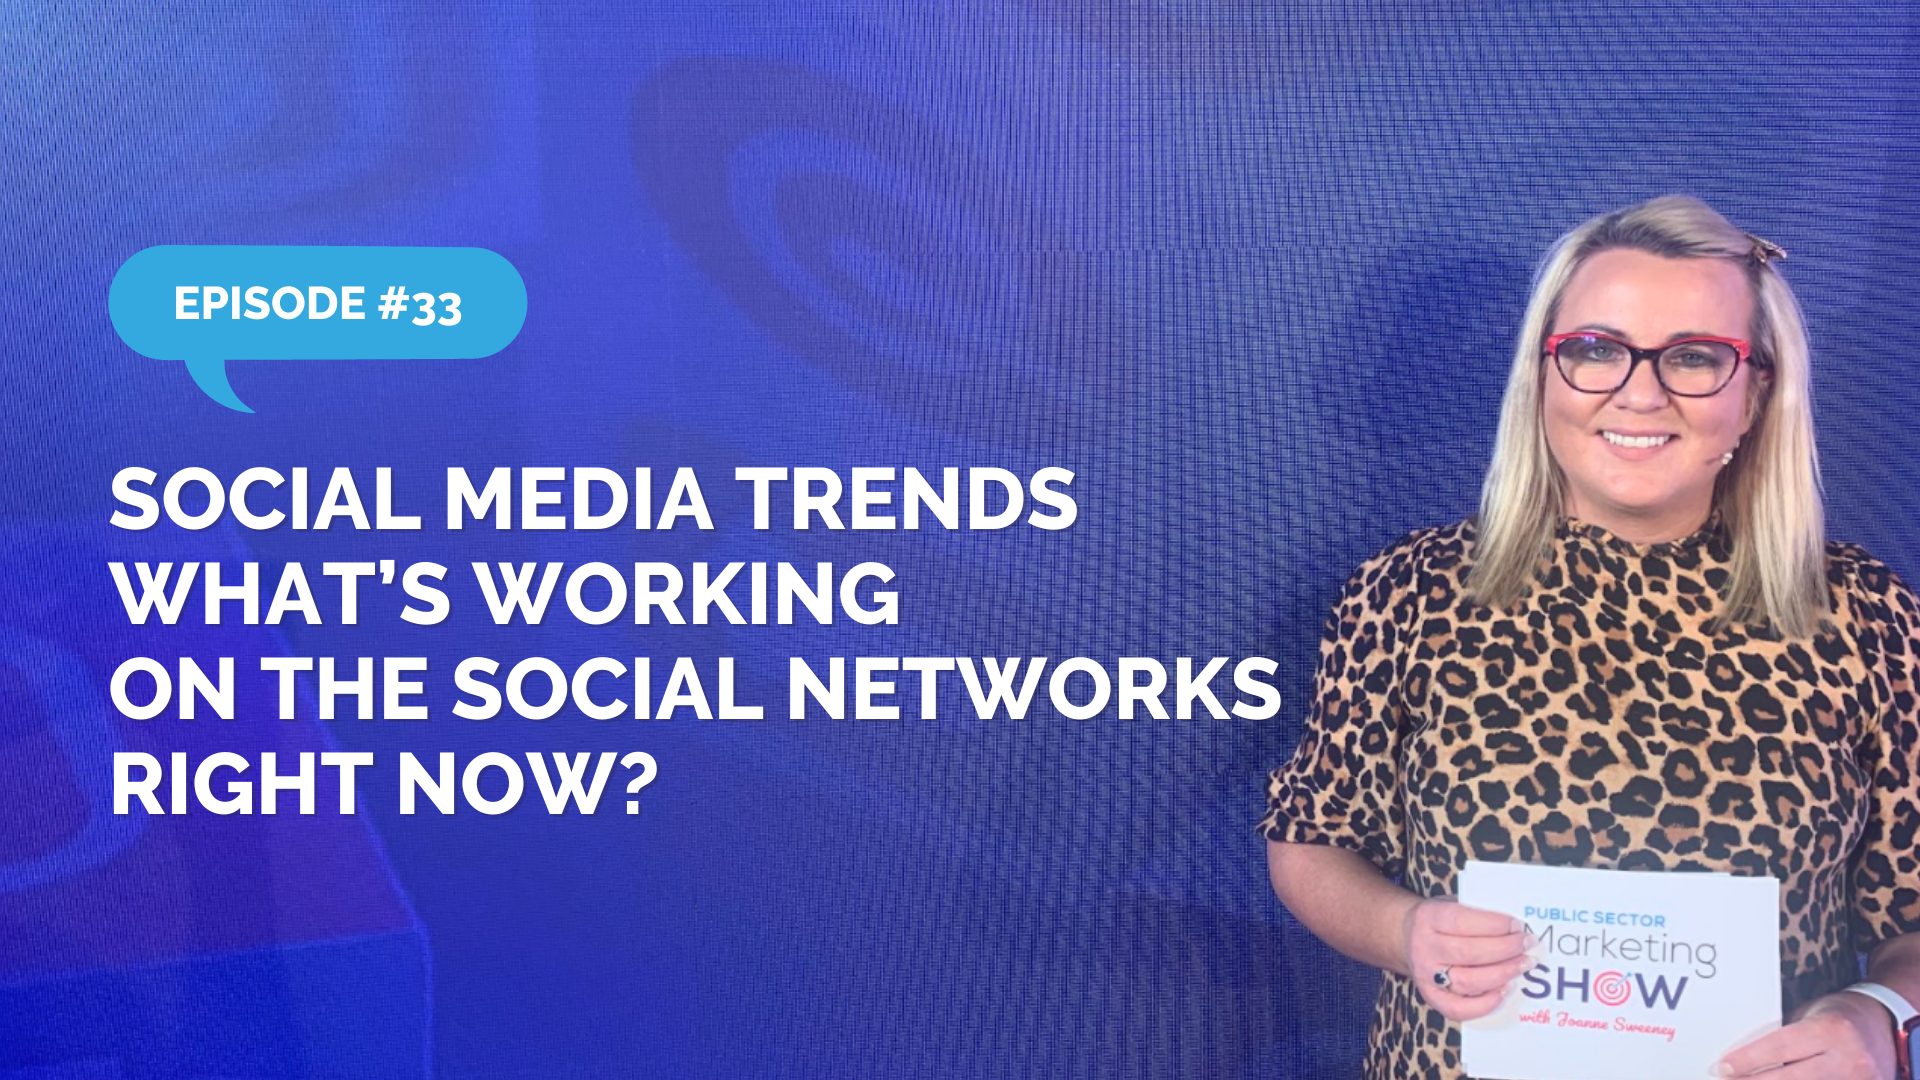 Episode 33 - Social Media Trends 2021 - What's Working on The Social Networks Right Now?